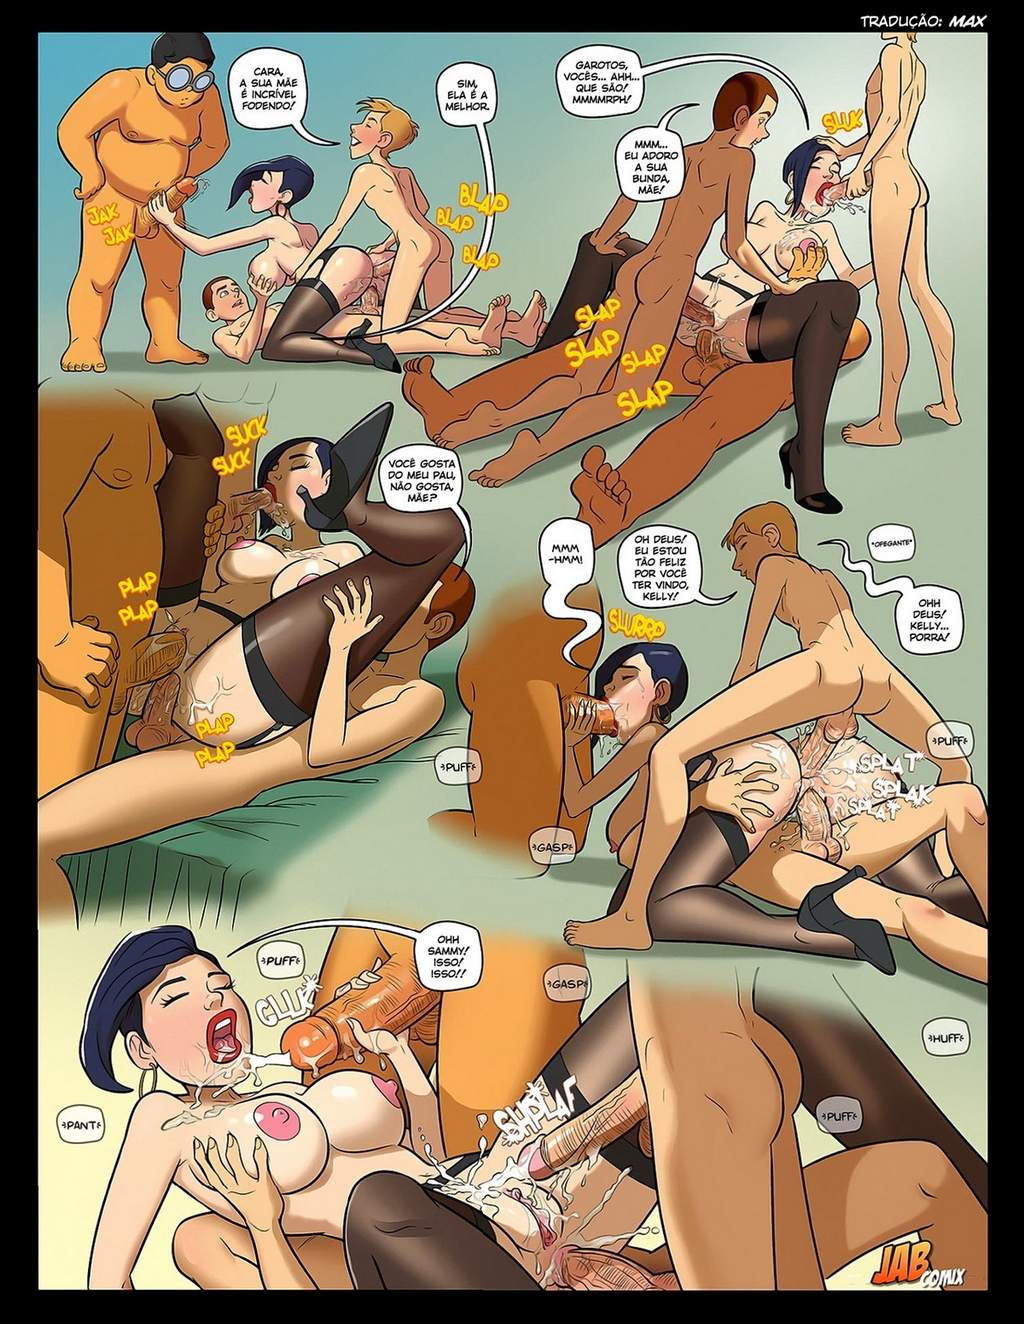 Nerd 2 Mark Kleanup Incesto The Hentai P.21 - hentai, comics-hq